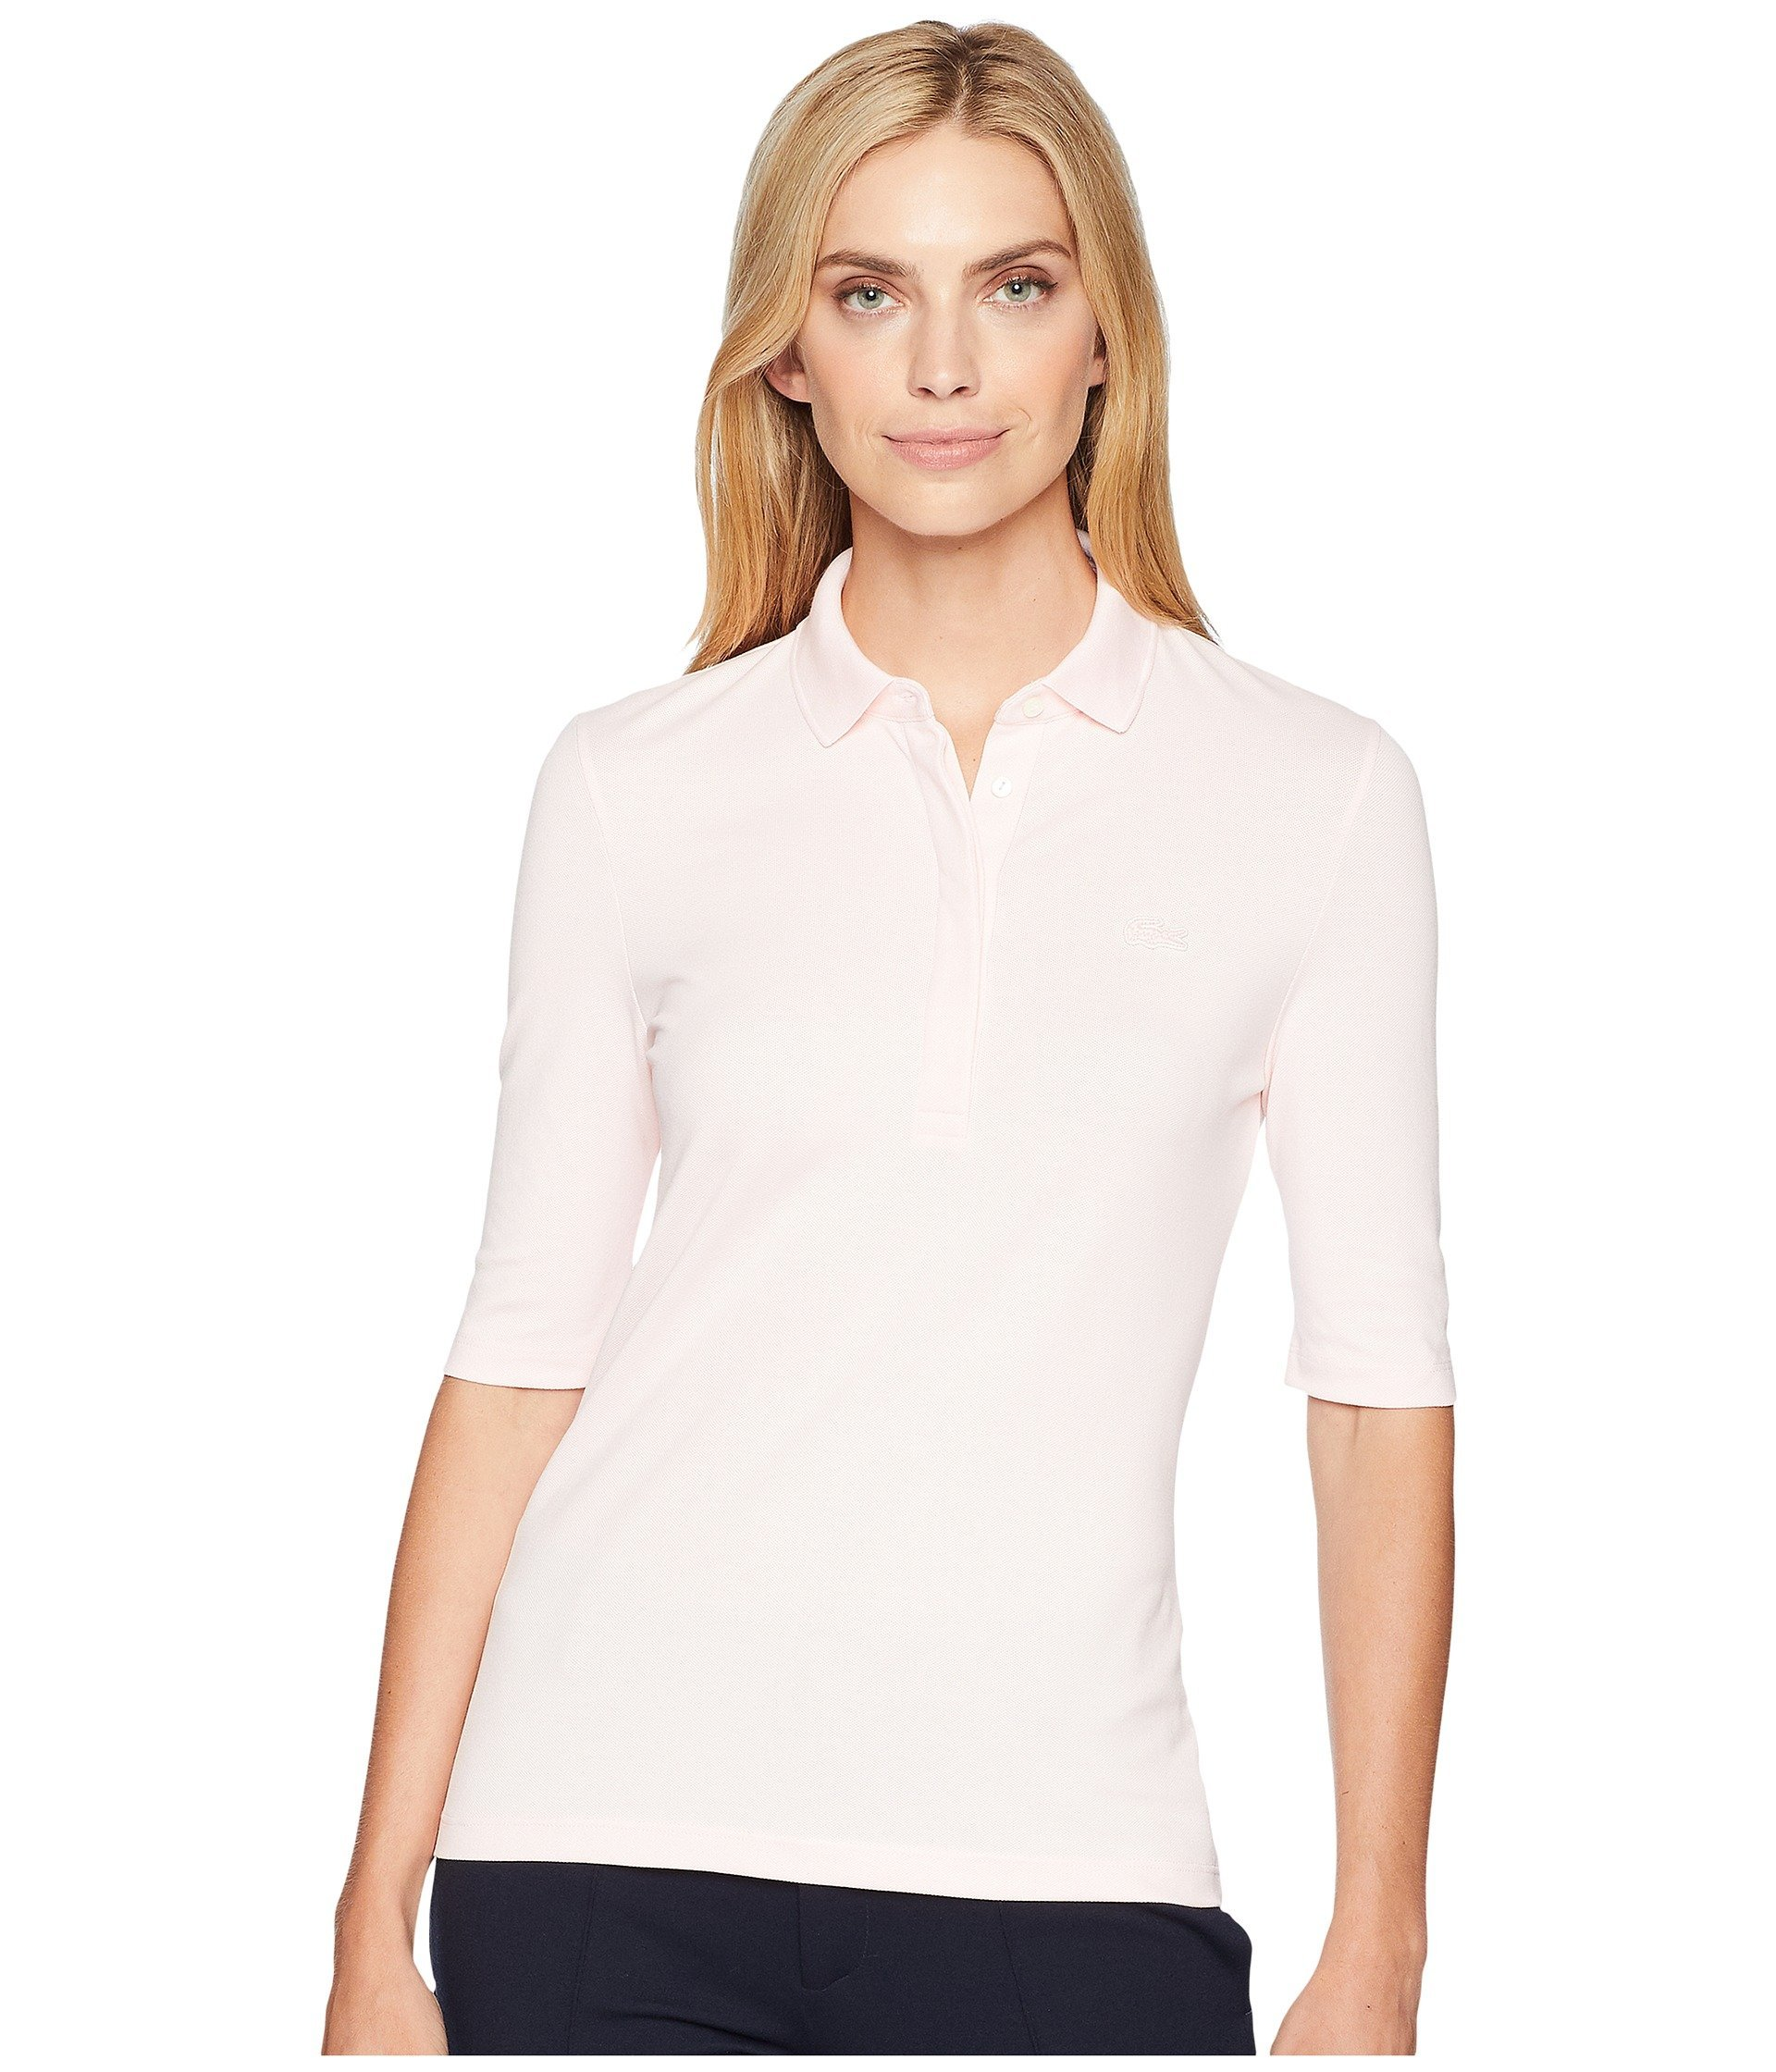 Lacoste Women's Classic Half Sleeve Slim Fit Stretch Pique Polo, PF7844, Flamingo Pink, 8